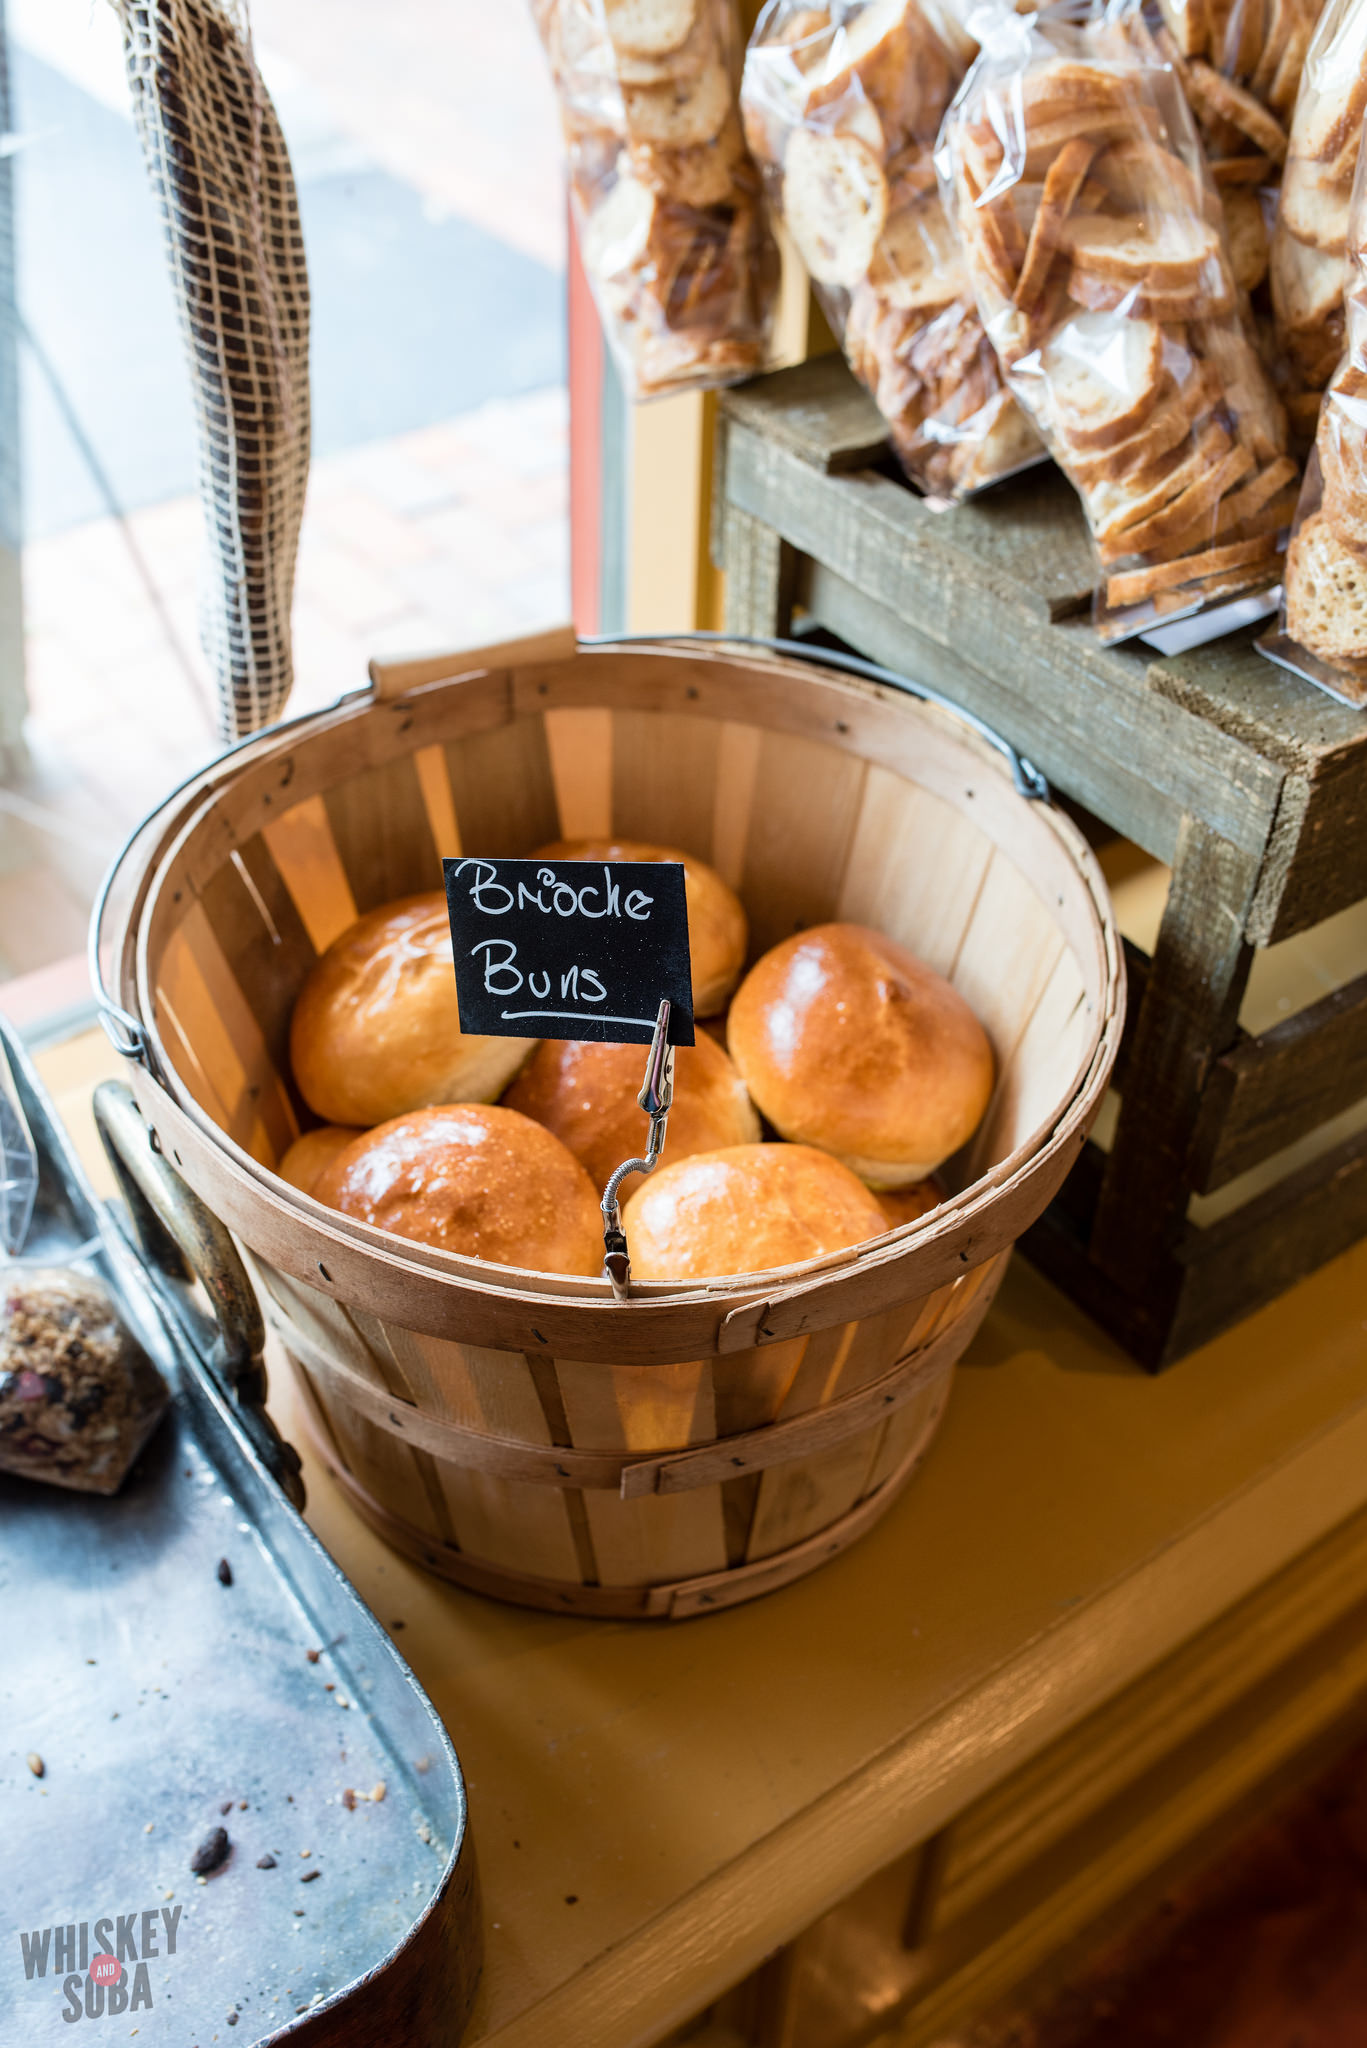 Brioche Buns at Truffles Butchery